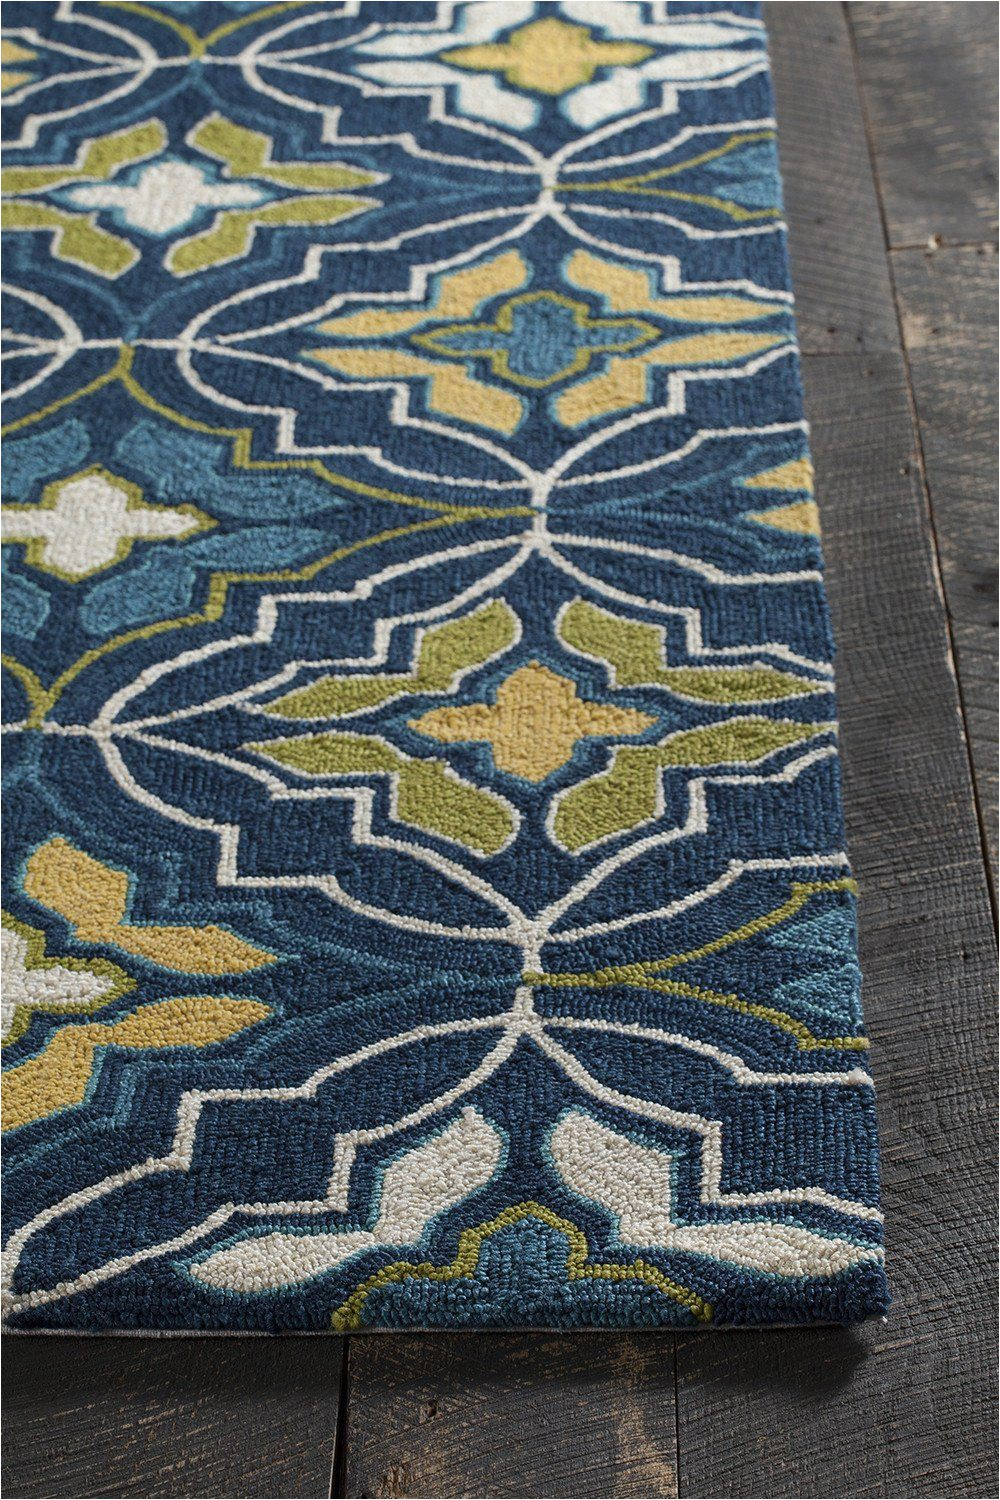 Blue and Yellow Throw Rugs Yellow and Gray at Rug Studio Pertaining to Blue area Rugs